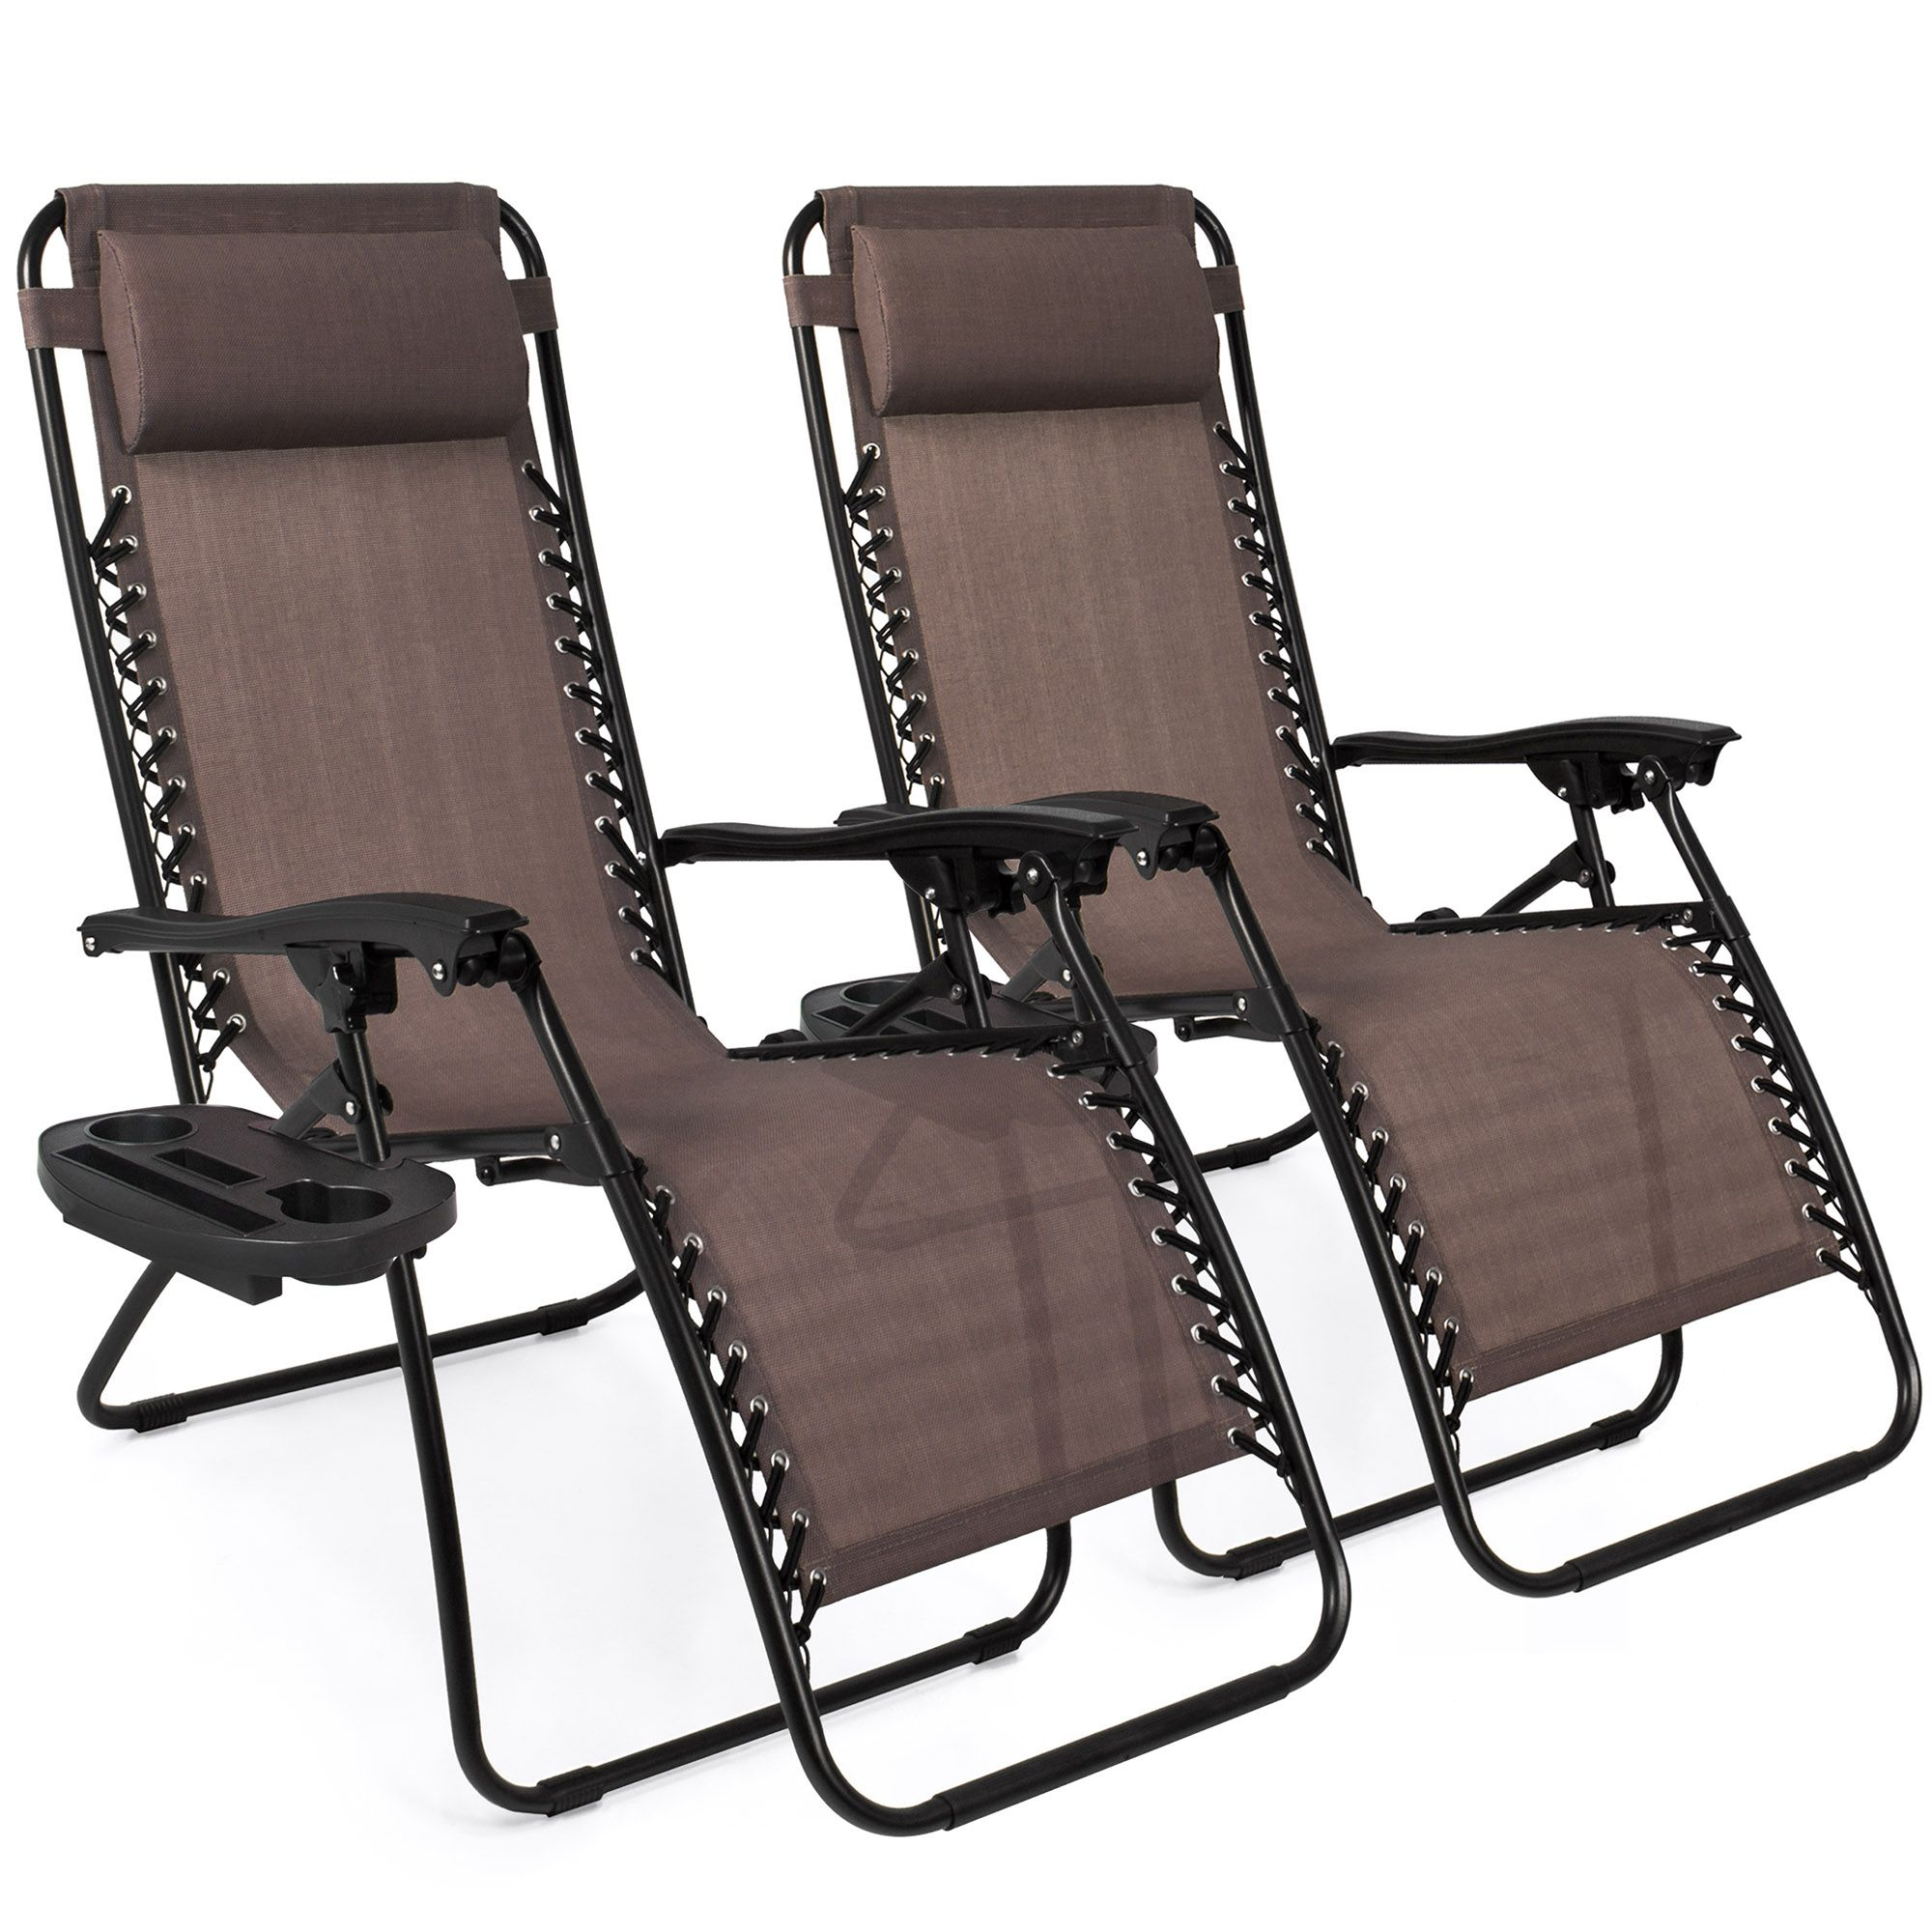 Patio & garden | Patio lounge chairs, Outdoor chairs, Lounge